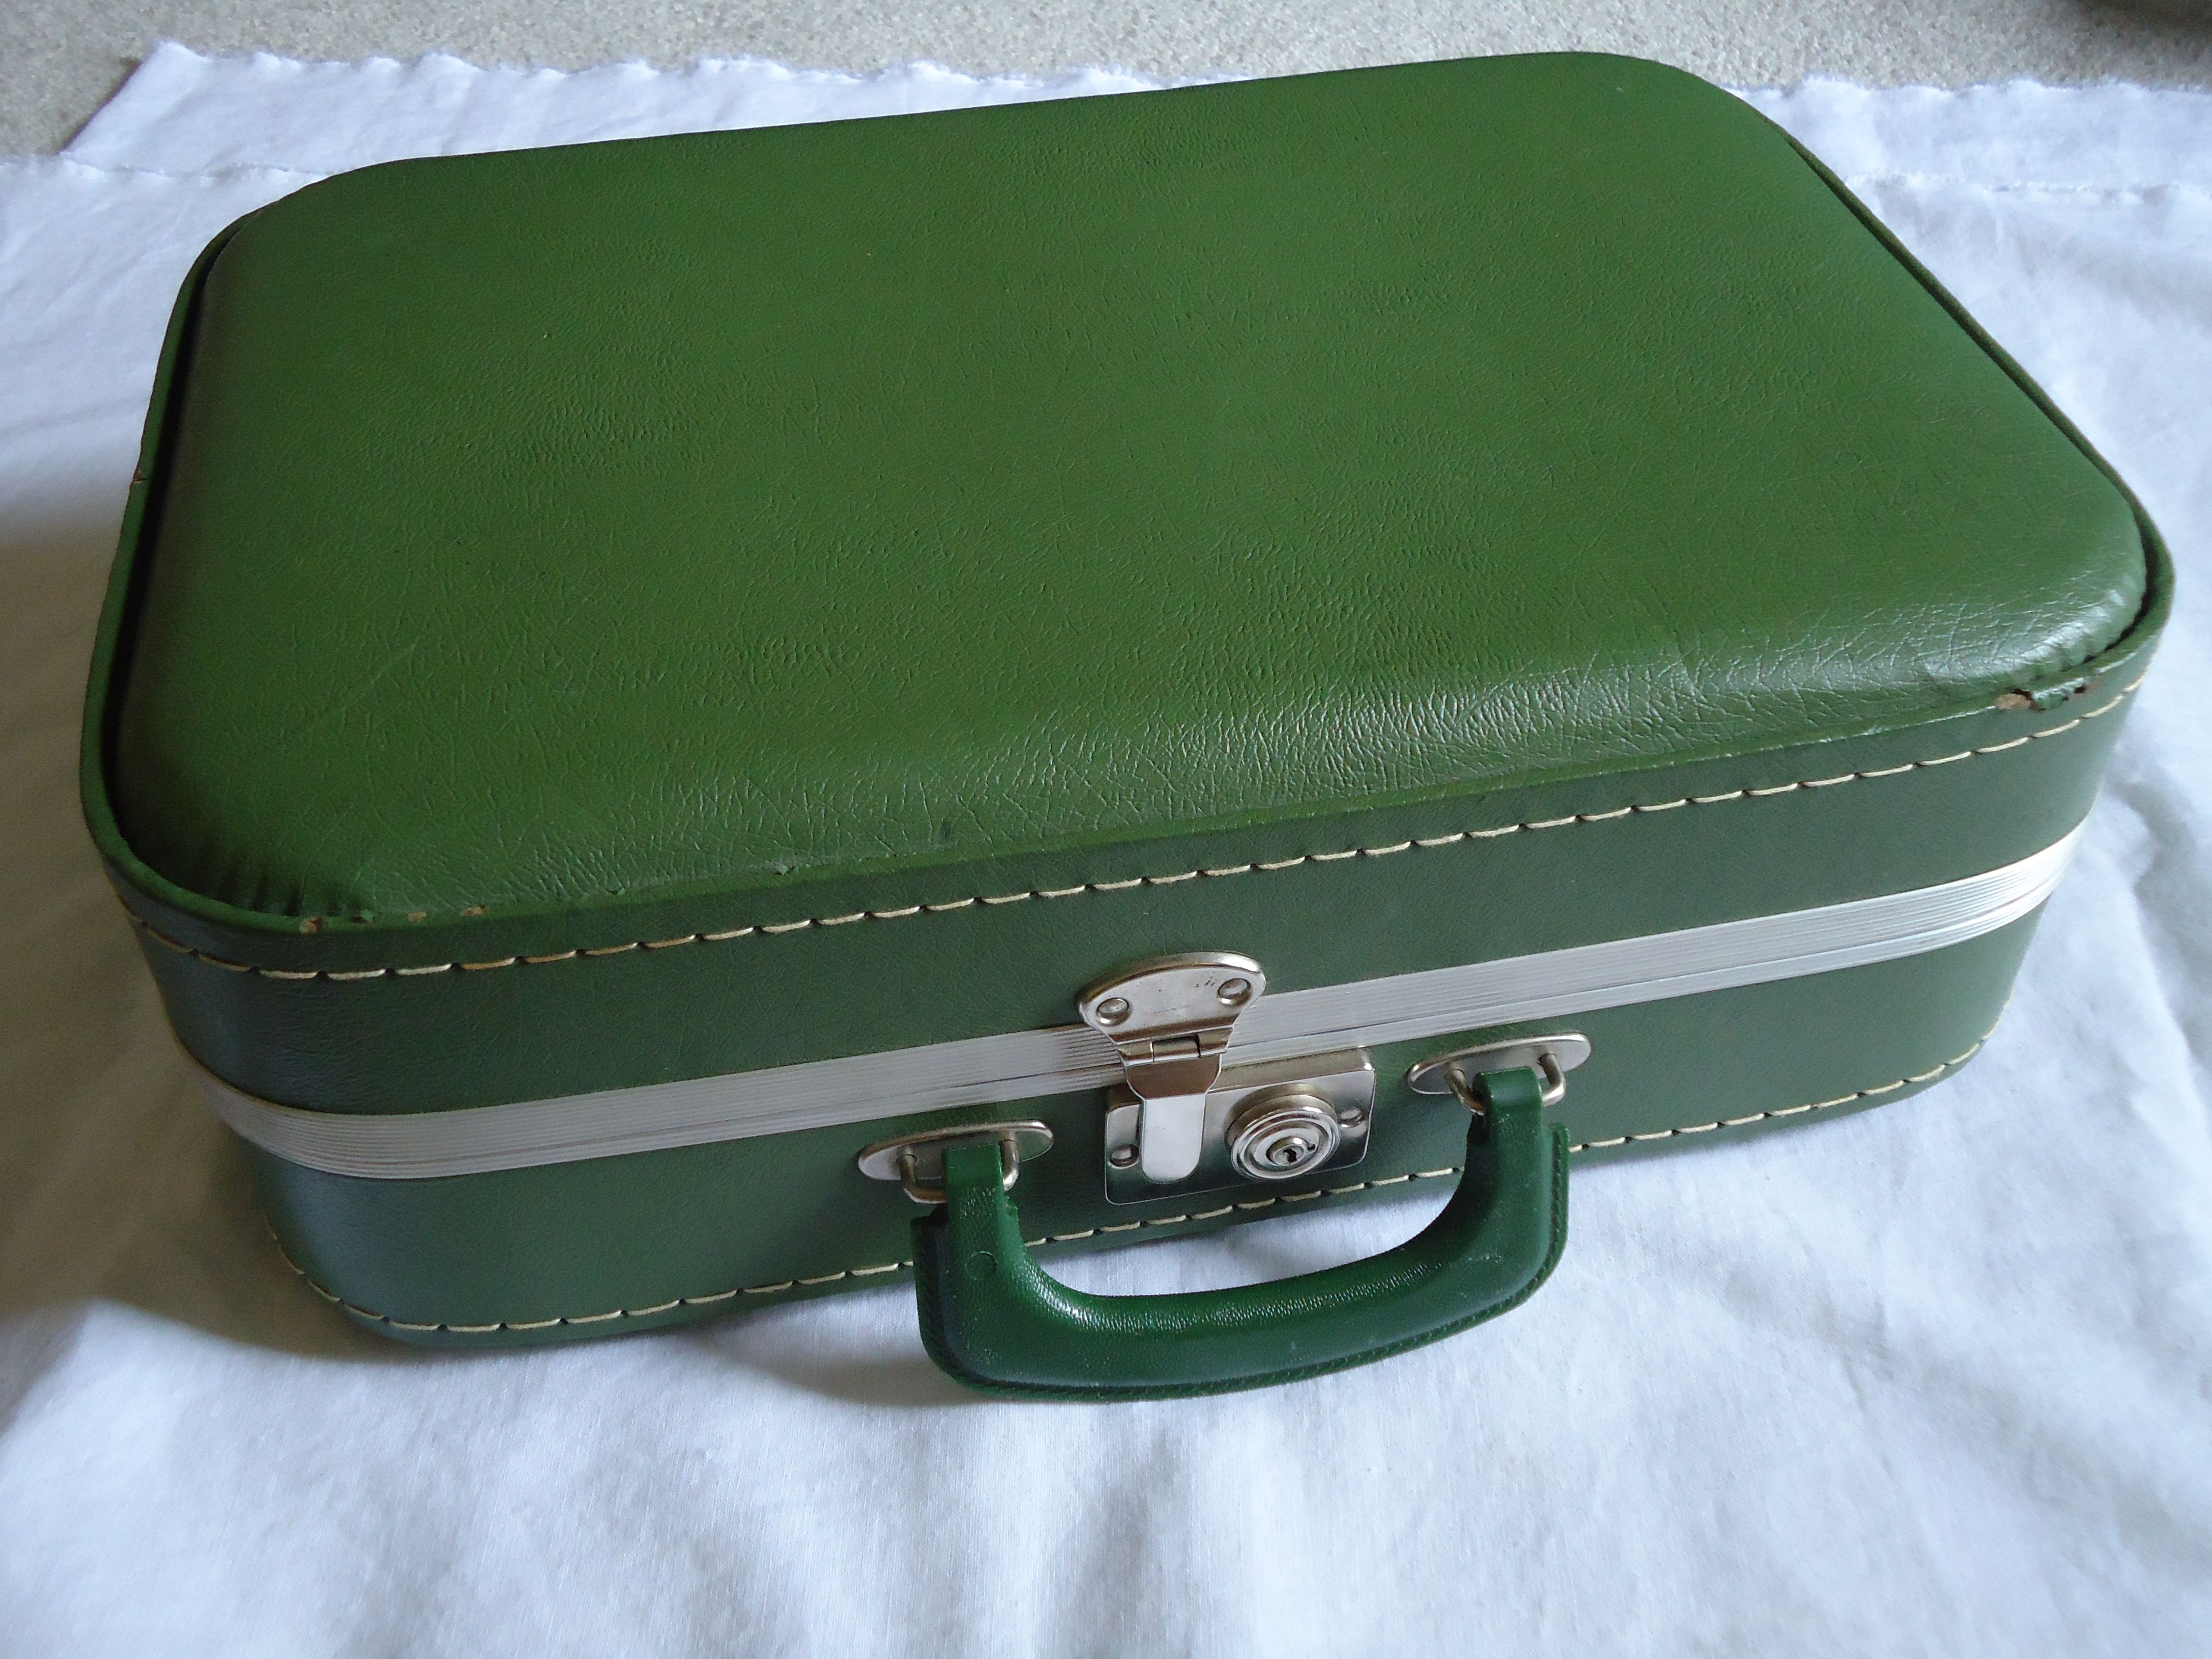 Suitcase | Luggage And Suitcases - Part 33